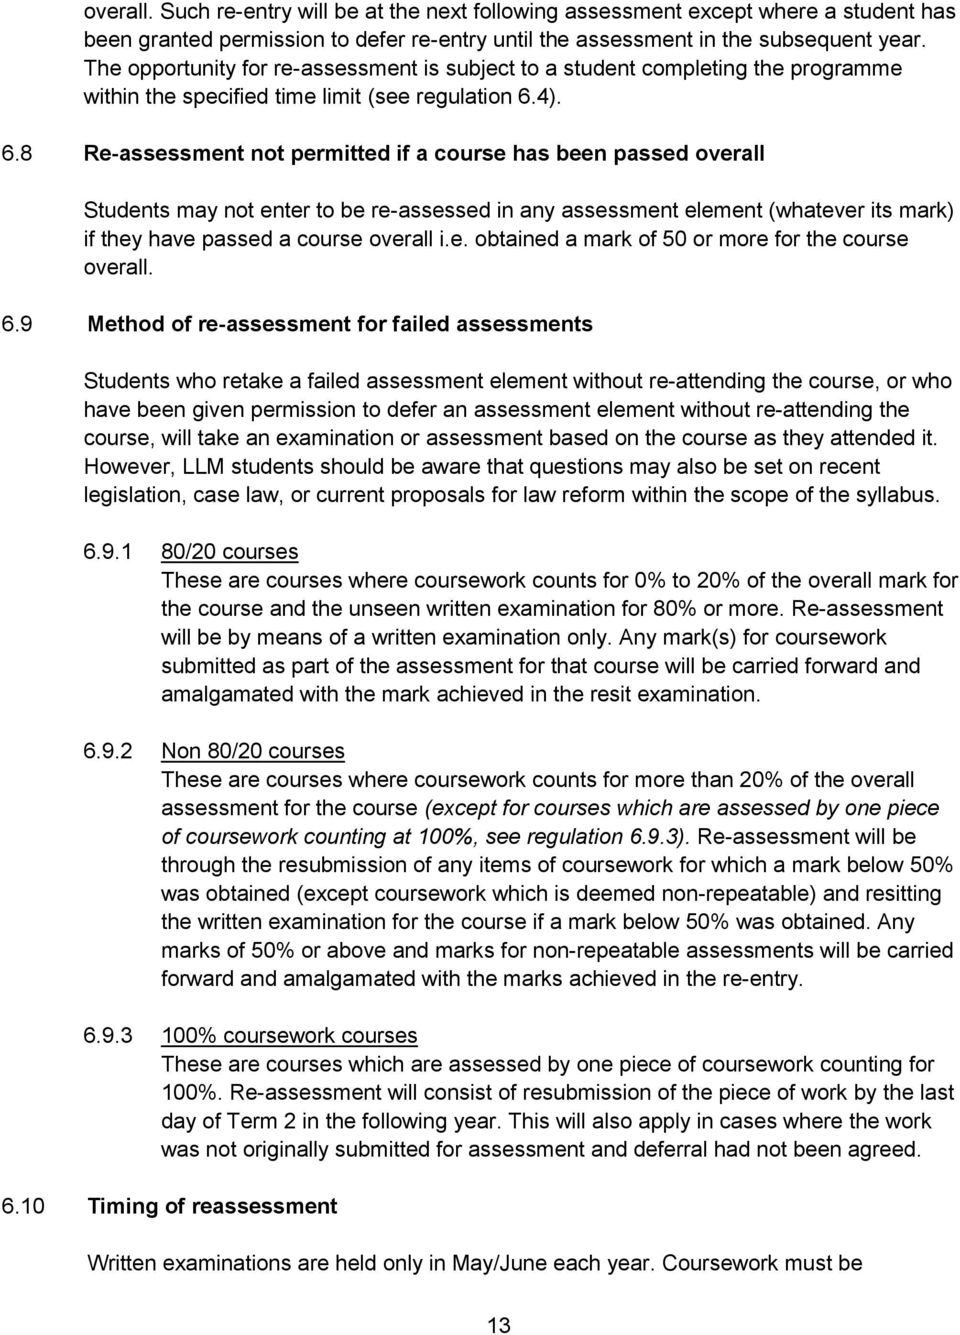 4). 6.8 Re-assessment not permitted if a course has been passed overall Students may not enter to be re-assessed in any assessment element (whatever its mark) if they have passed a course overall i.e. obtained a mark of 50 or more for the course overall.